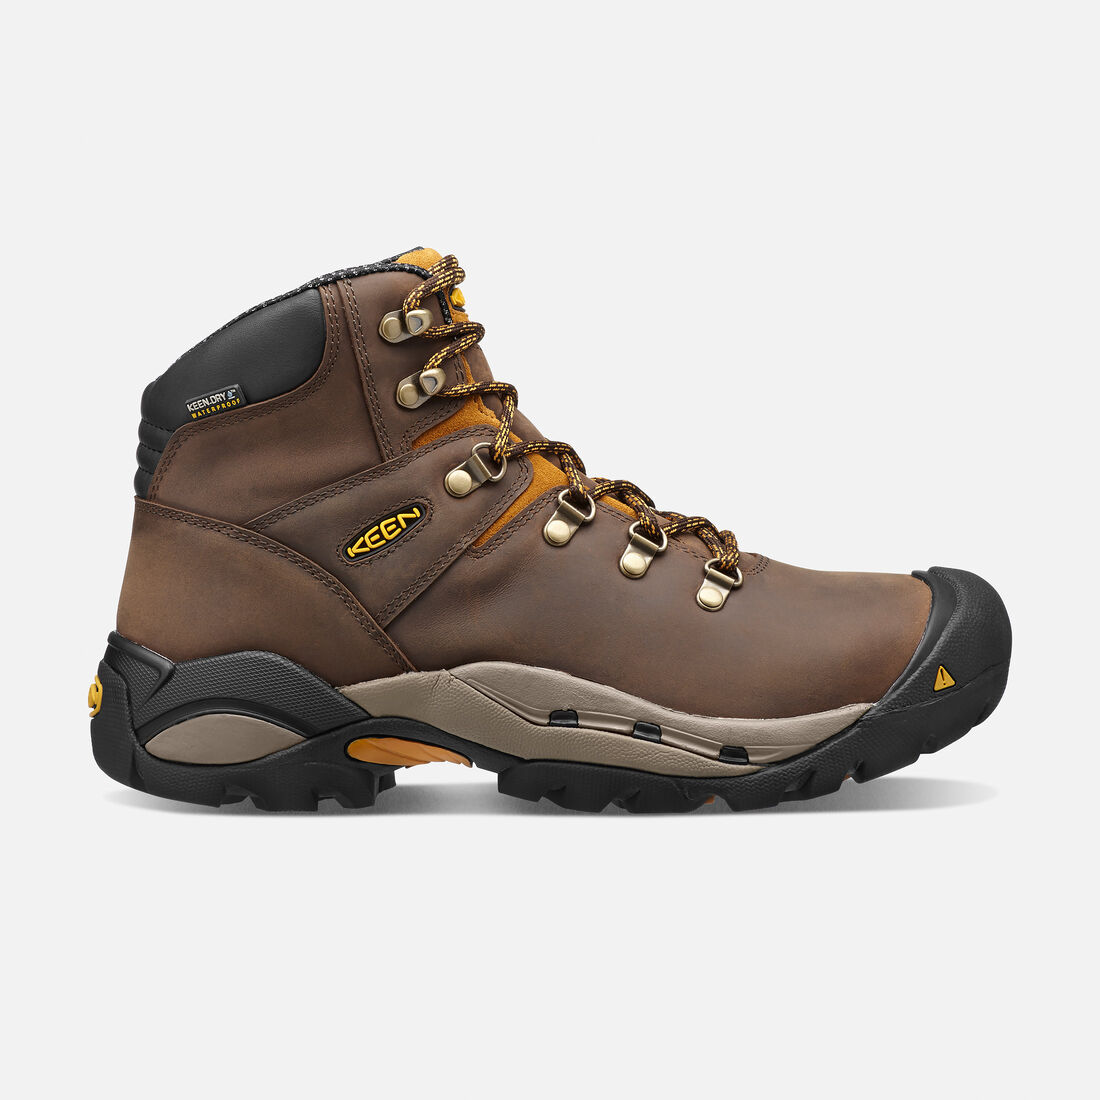 23c053b187e8 Men s Cleveland (Steel Toe) in Cascade Brown Inca Gold - large view.